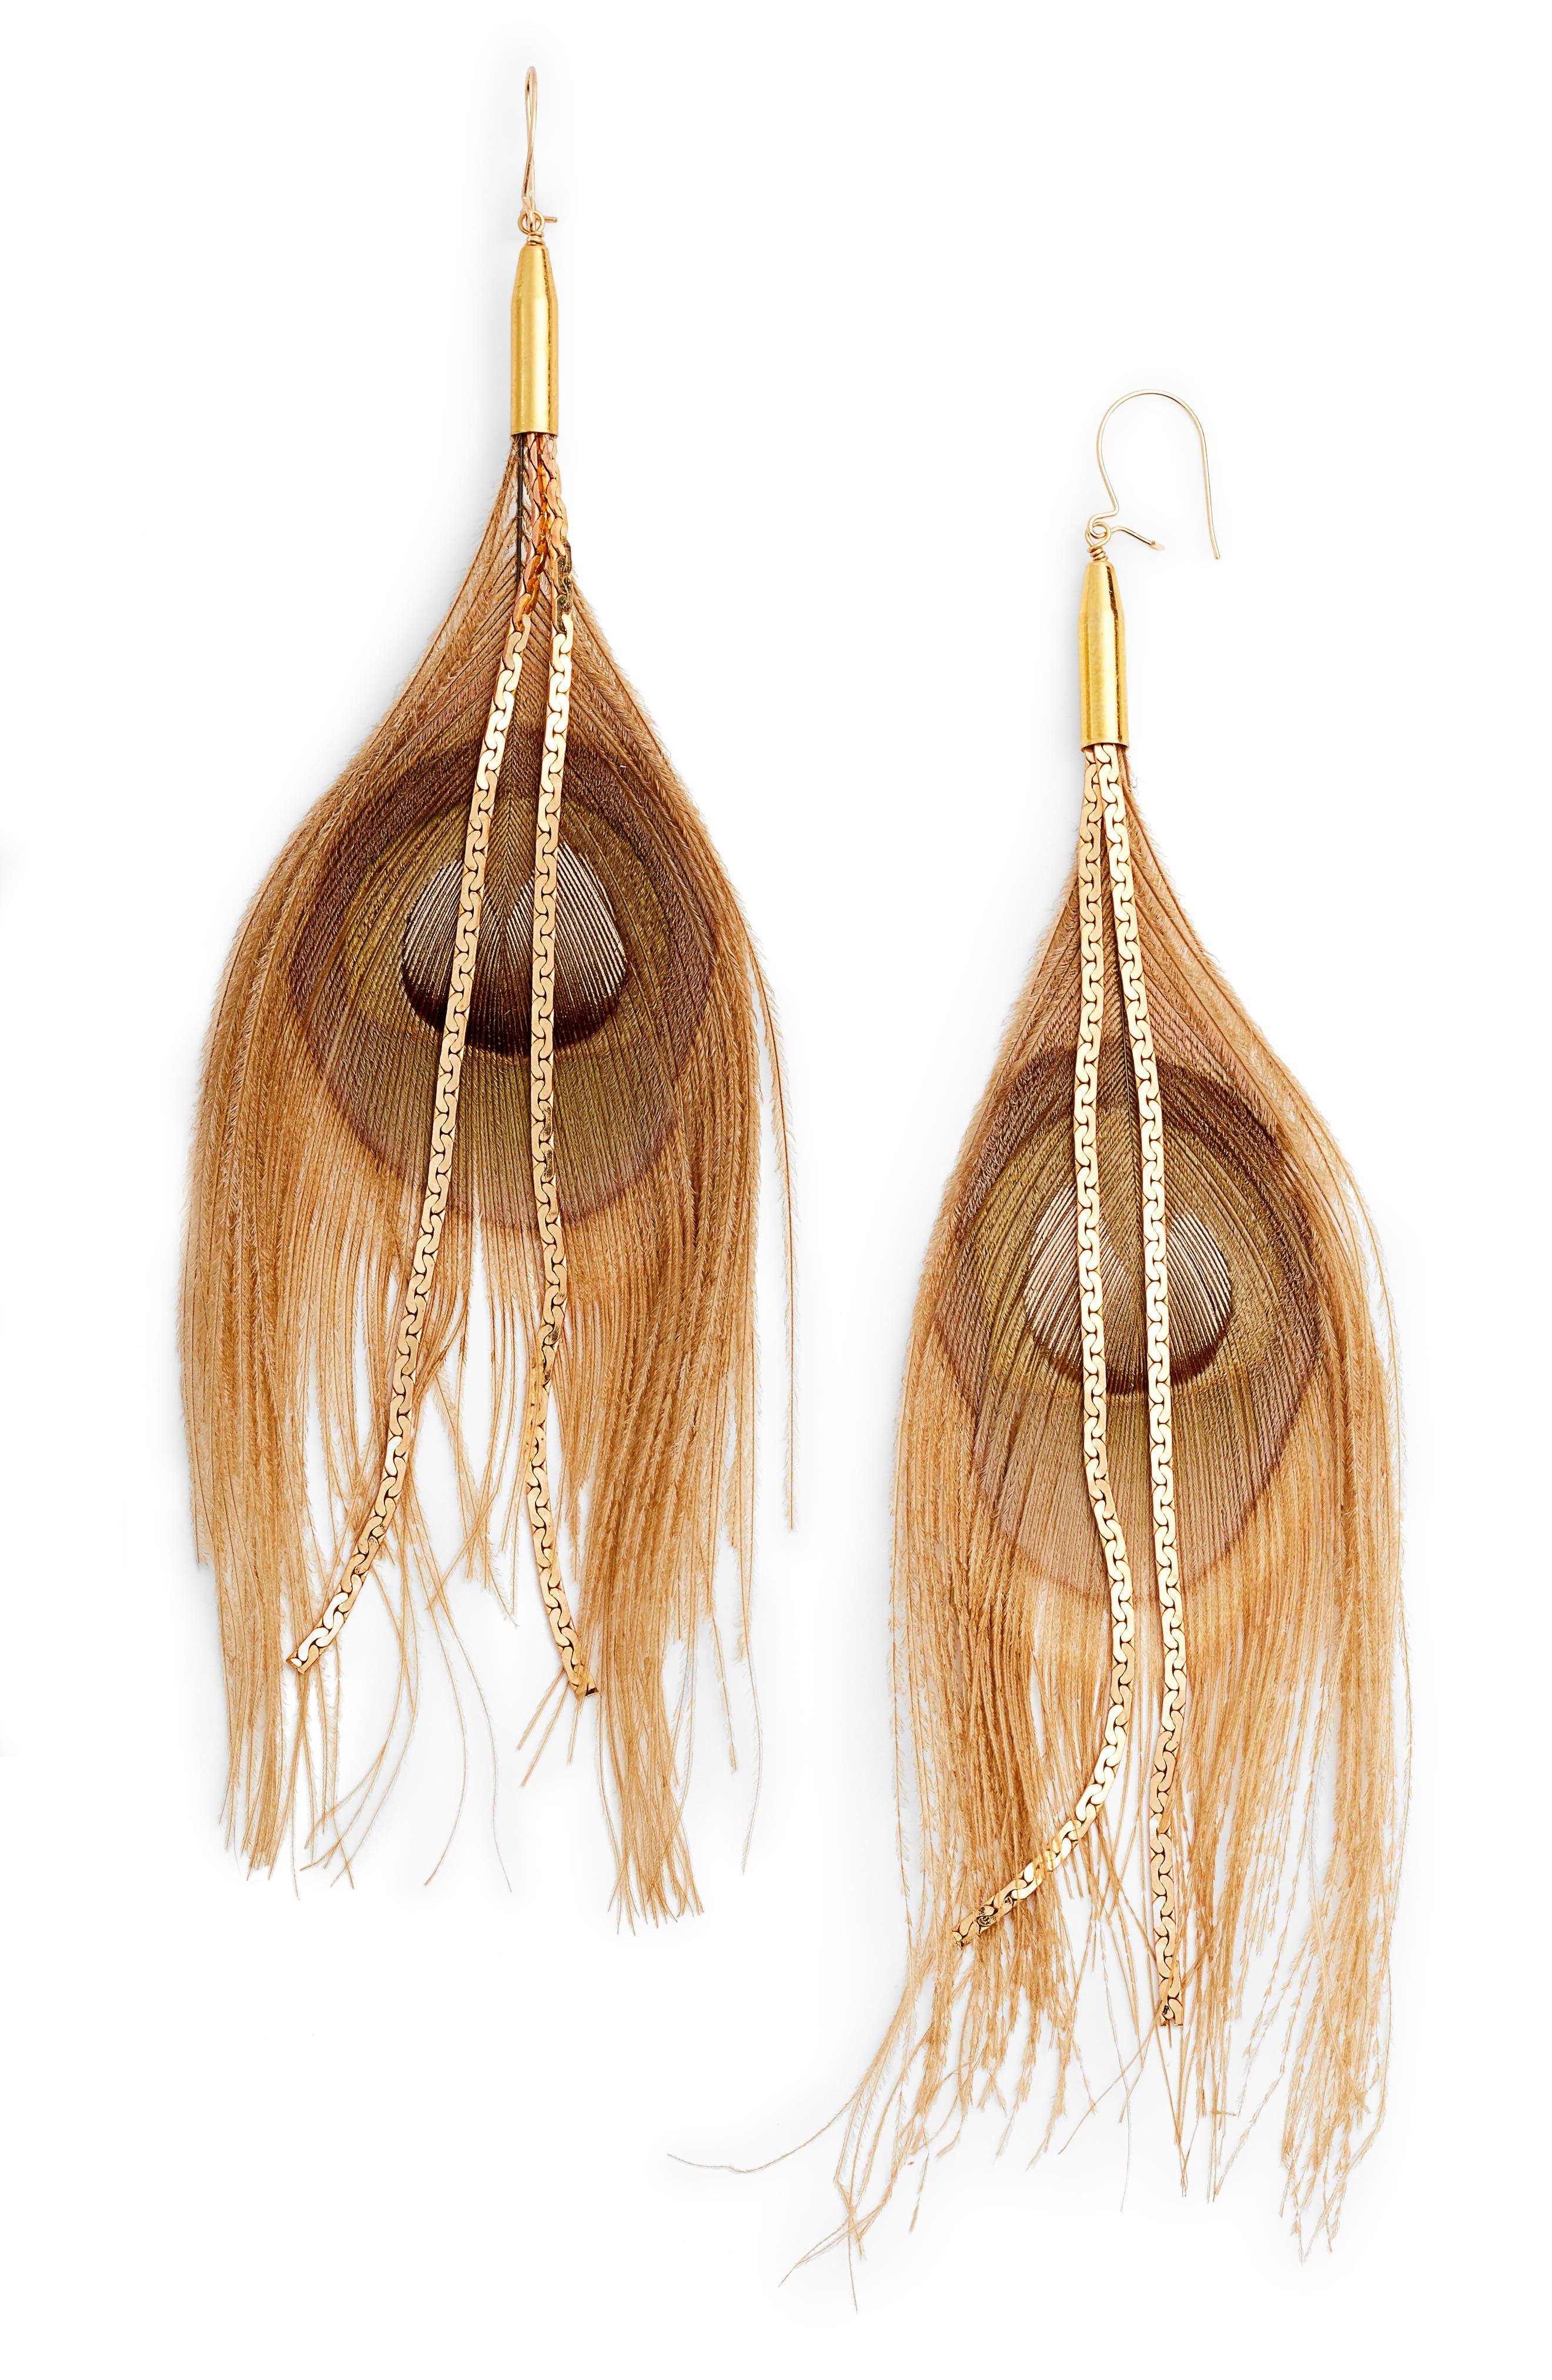 Peacock Feather Earrings,                             Main thumbnail 1, color,                             Beige